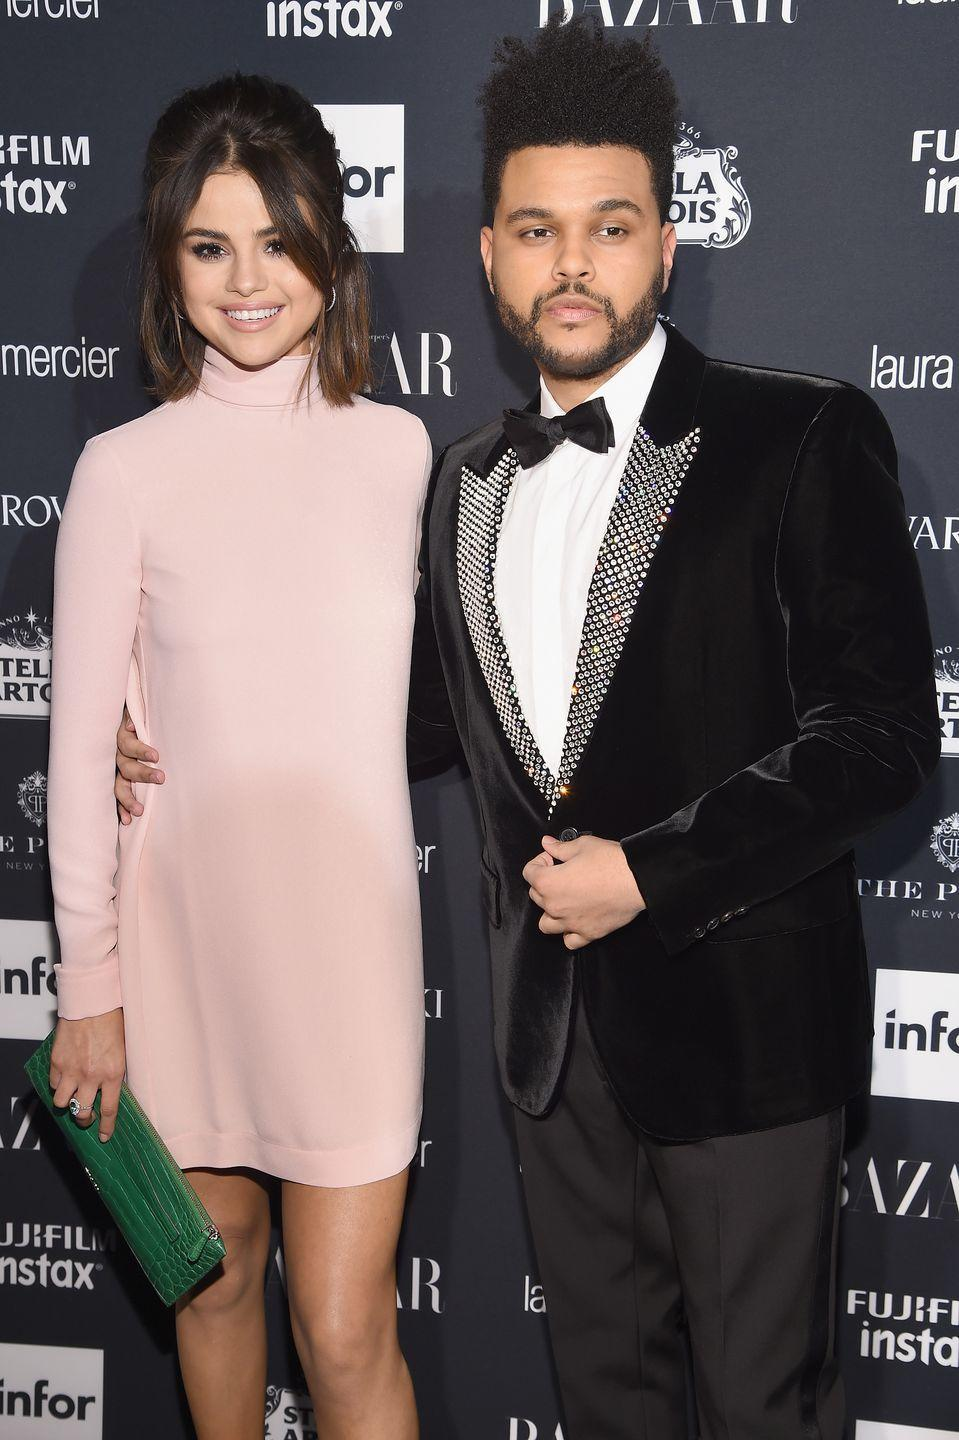 "<p>This time, it wasn't Jelena supporters that came for the relationship (although <a href=""http://www.latina.com/entertainment/celebrity/the-weeknd-trolling-fans-selena-gomez"" rel=""nofollow noopener"" target=""_blank"" data-ylk=""slk:they weren't too pleased either"" class=""link rapid-noclick-resp"">they weren't too pleased either</a>). It was fans of The Weeknd's relationship with Bella Hadid that weren't pleased. But <a href=""https://twitter.com/BigSimonsAyy/status/979754117580107776?ref_src=twsrc%5Etfw%7Ctwcamp%5Etweetembed%7Ctwterm%5E979754117580107776%7Ctwgr%5E&ref_url=https%3A%2F%2Fpizzabottle.com%2F86754-selena-gomez-the-weekend-new-album%2F"" rel=""nofollow noopener"" target=""_blank"" data-ylk=""slk:his fanbase changed their tune"" class=""link rapid-noclick-resp"">his fanbase changed their tune</a> when the singer released a ton of popular music about how the <em>Rare </em>singer broke his heart. Great music > relationship status.</p>"